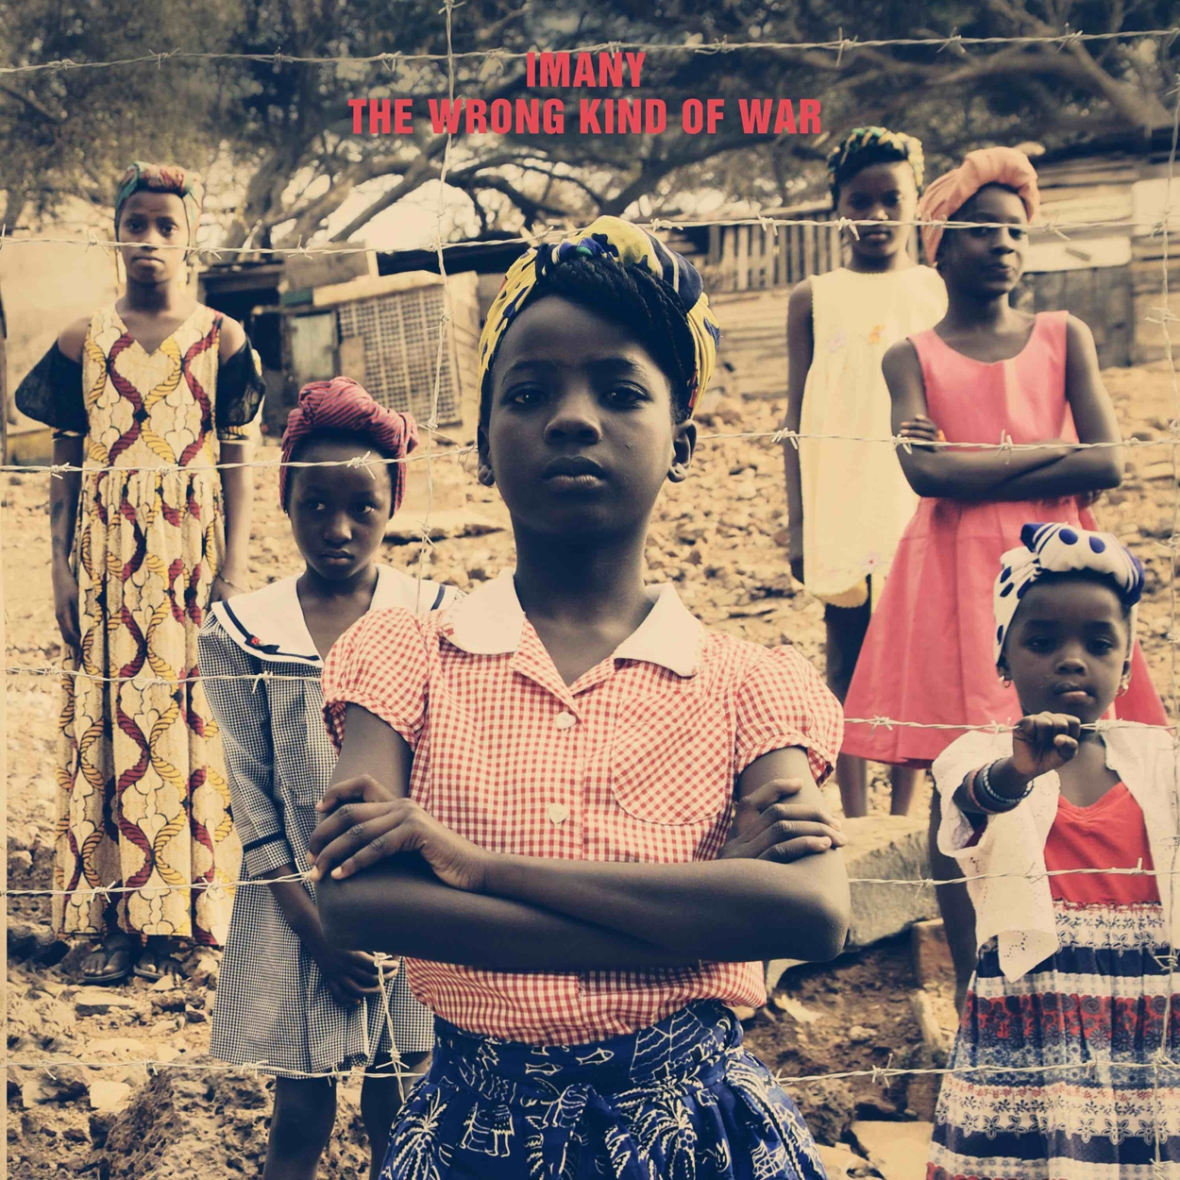 Imany, The Wrong Kind of War